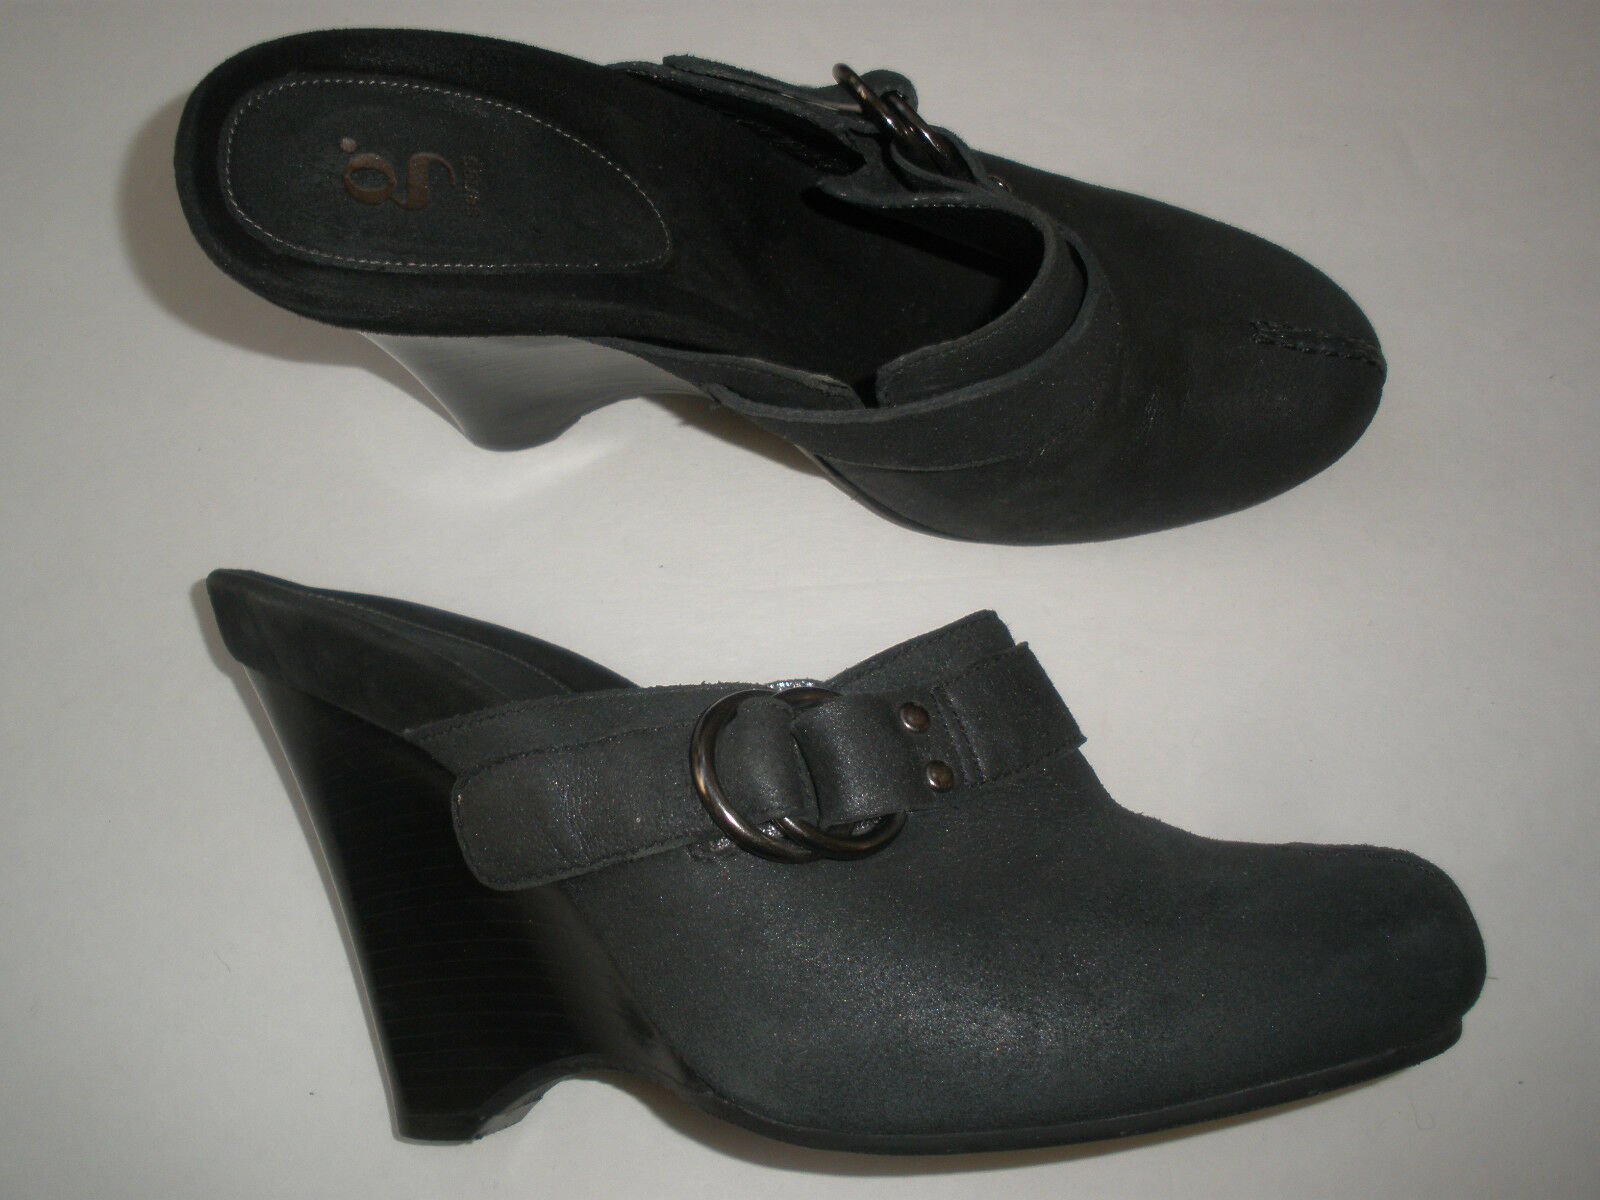 COLE HAAN G SERIES LEATHER WEDGE CLOGS SIZE US 8 HOT VINTAGE